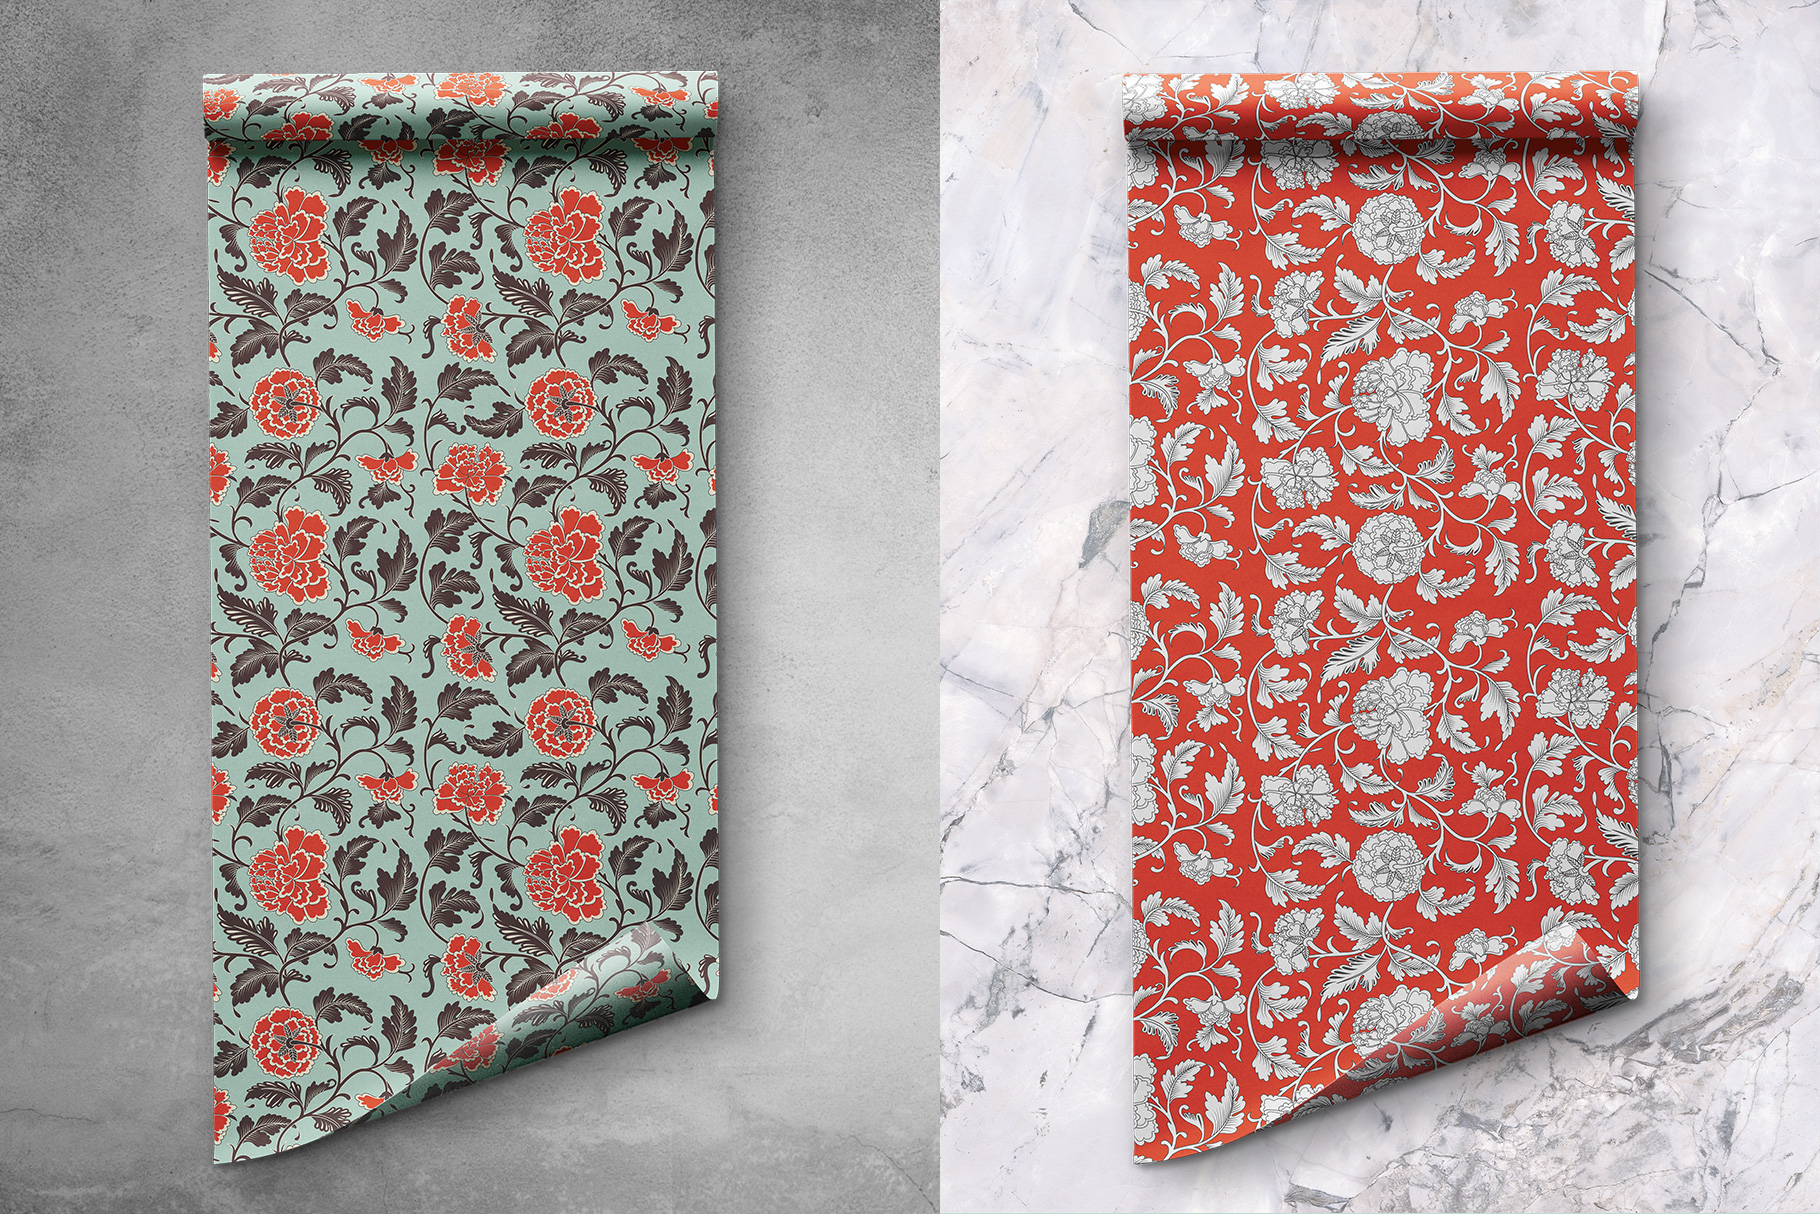 background options of the top view wrapping paper roll mockup